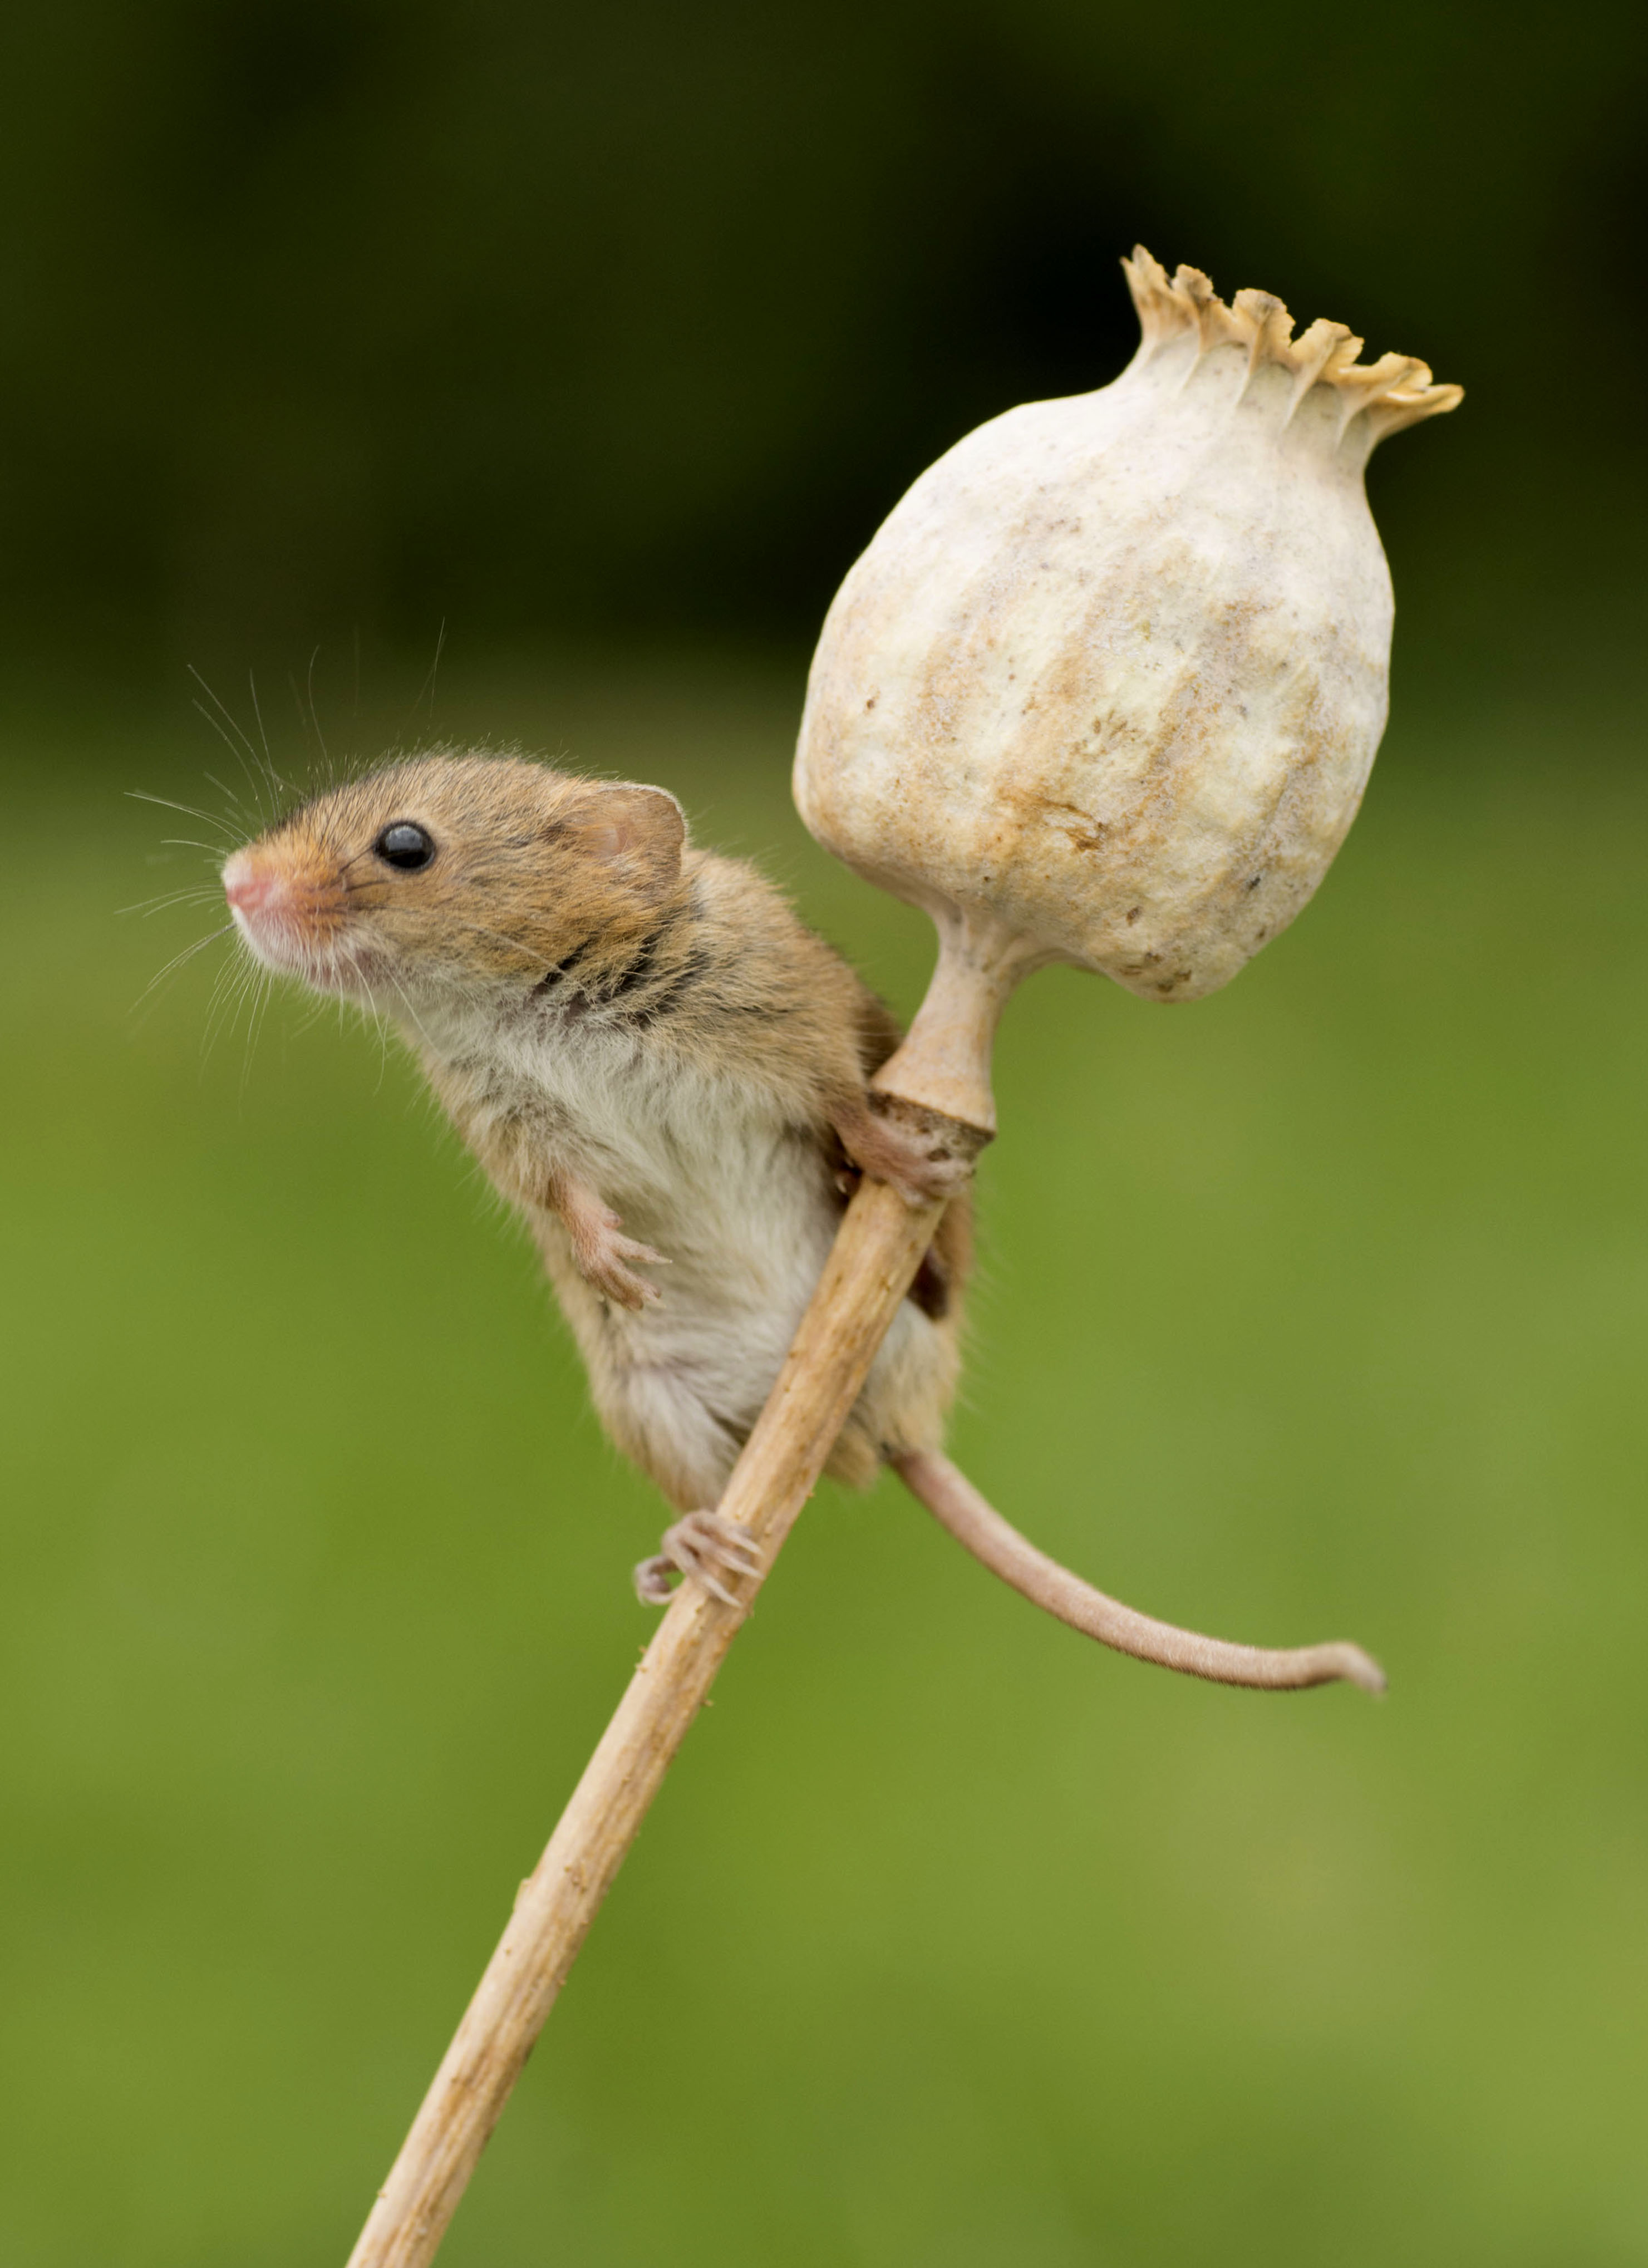 Caught in the act - Adorable harvest mice captured on ...